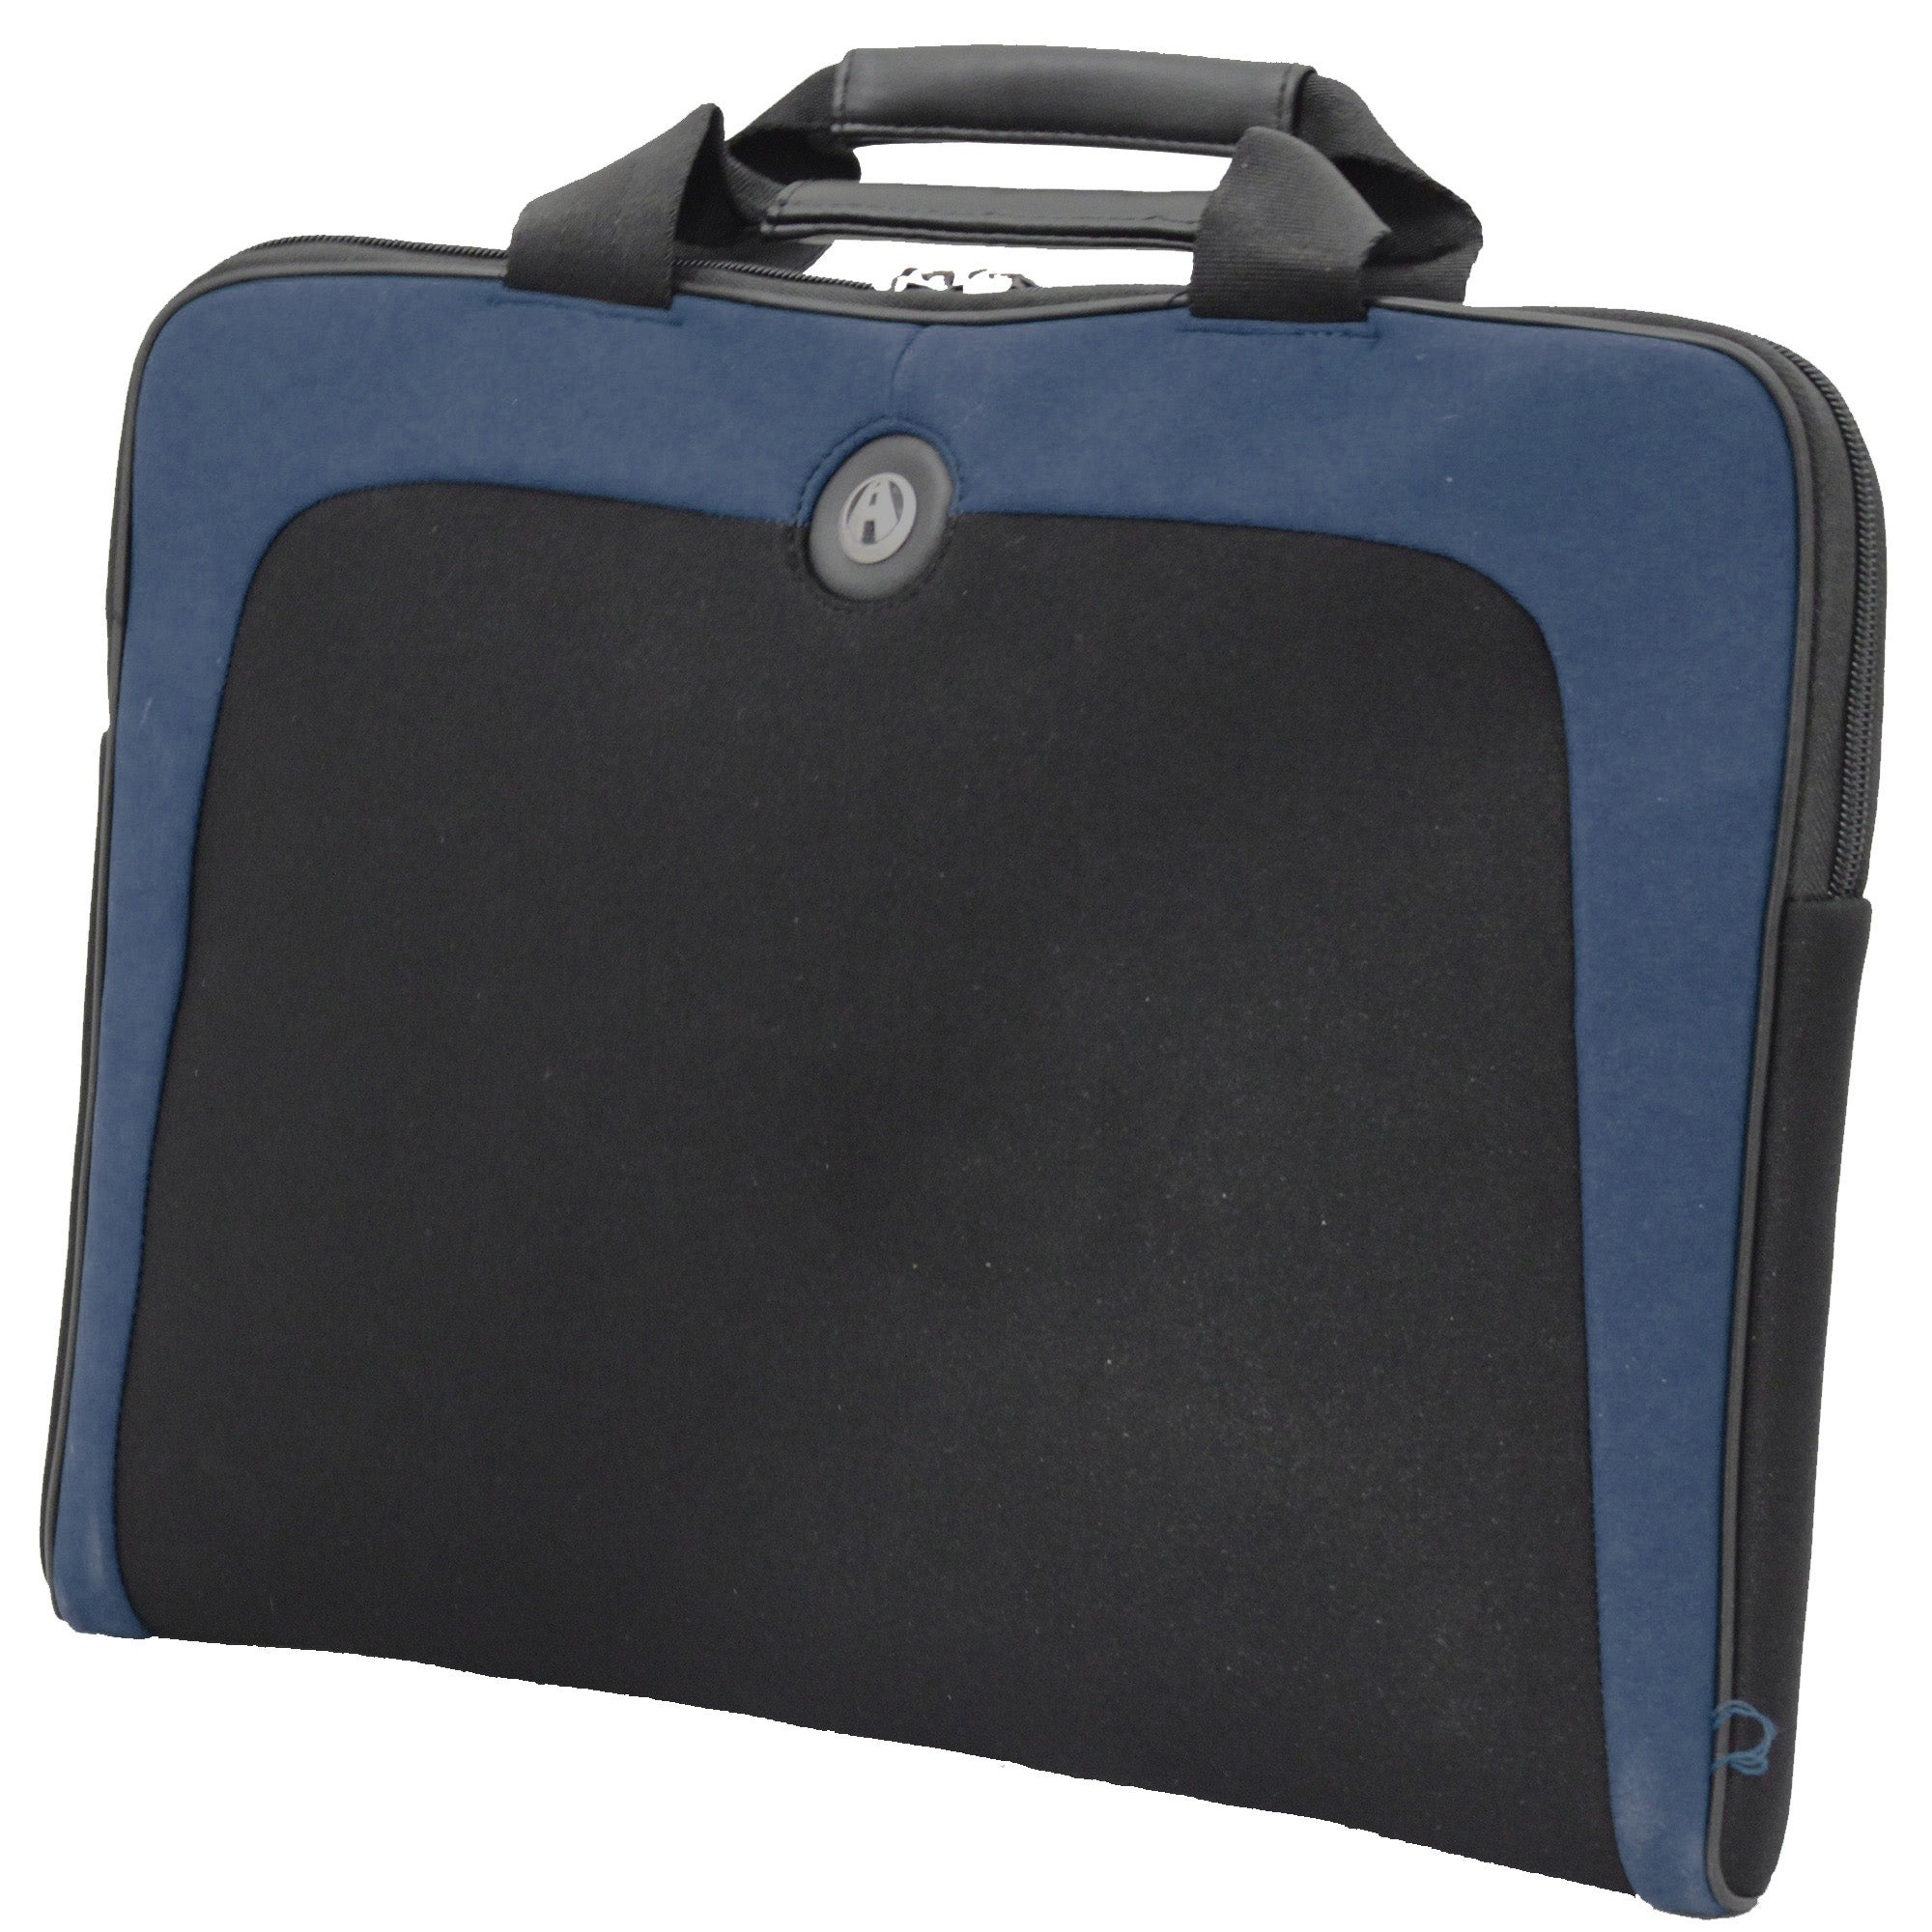 Avenues 'Civic' Blue 15.4-inch Laptop Sleeve